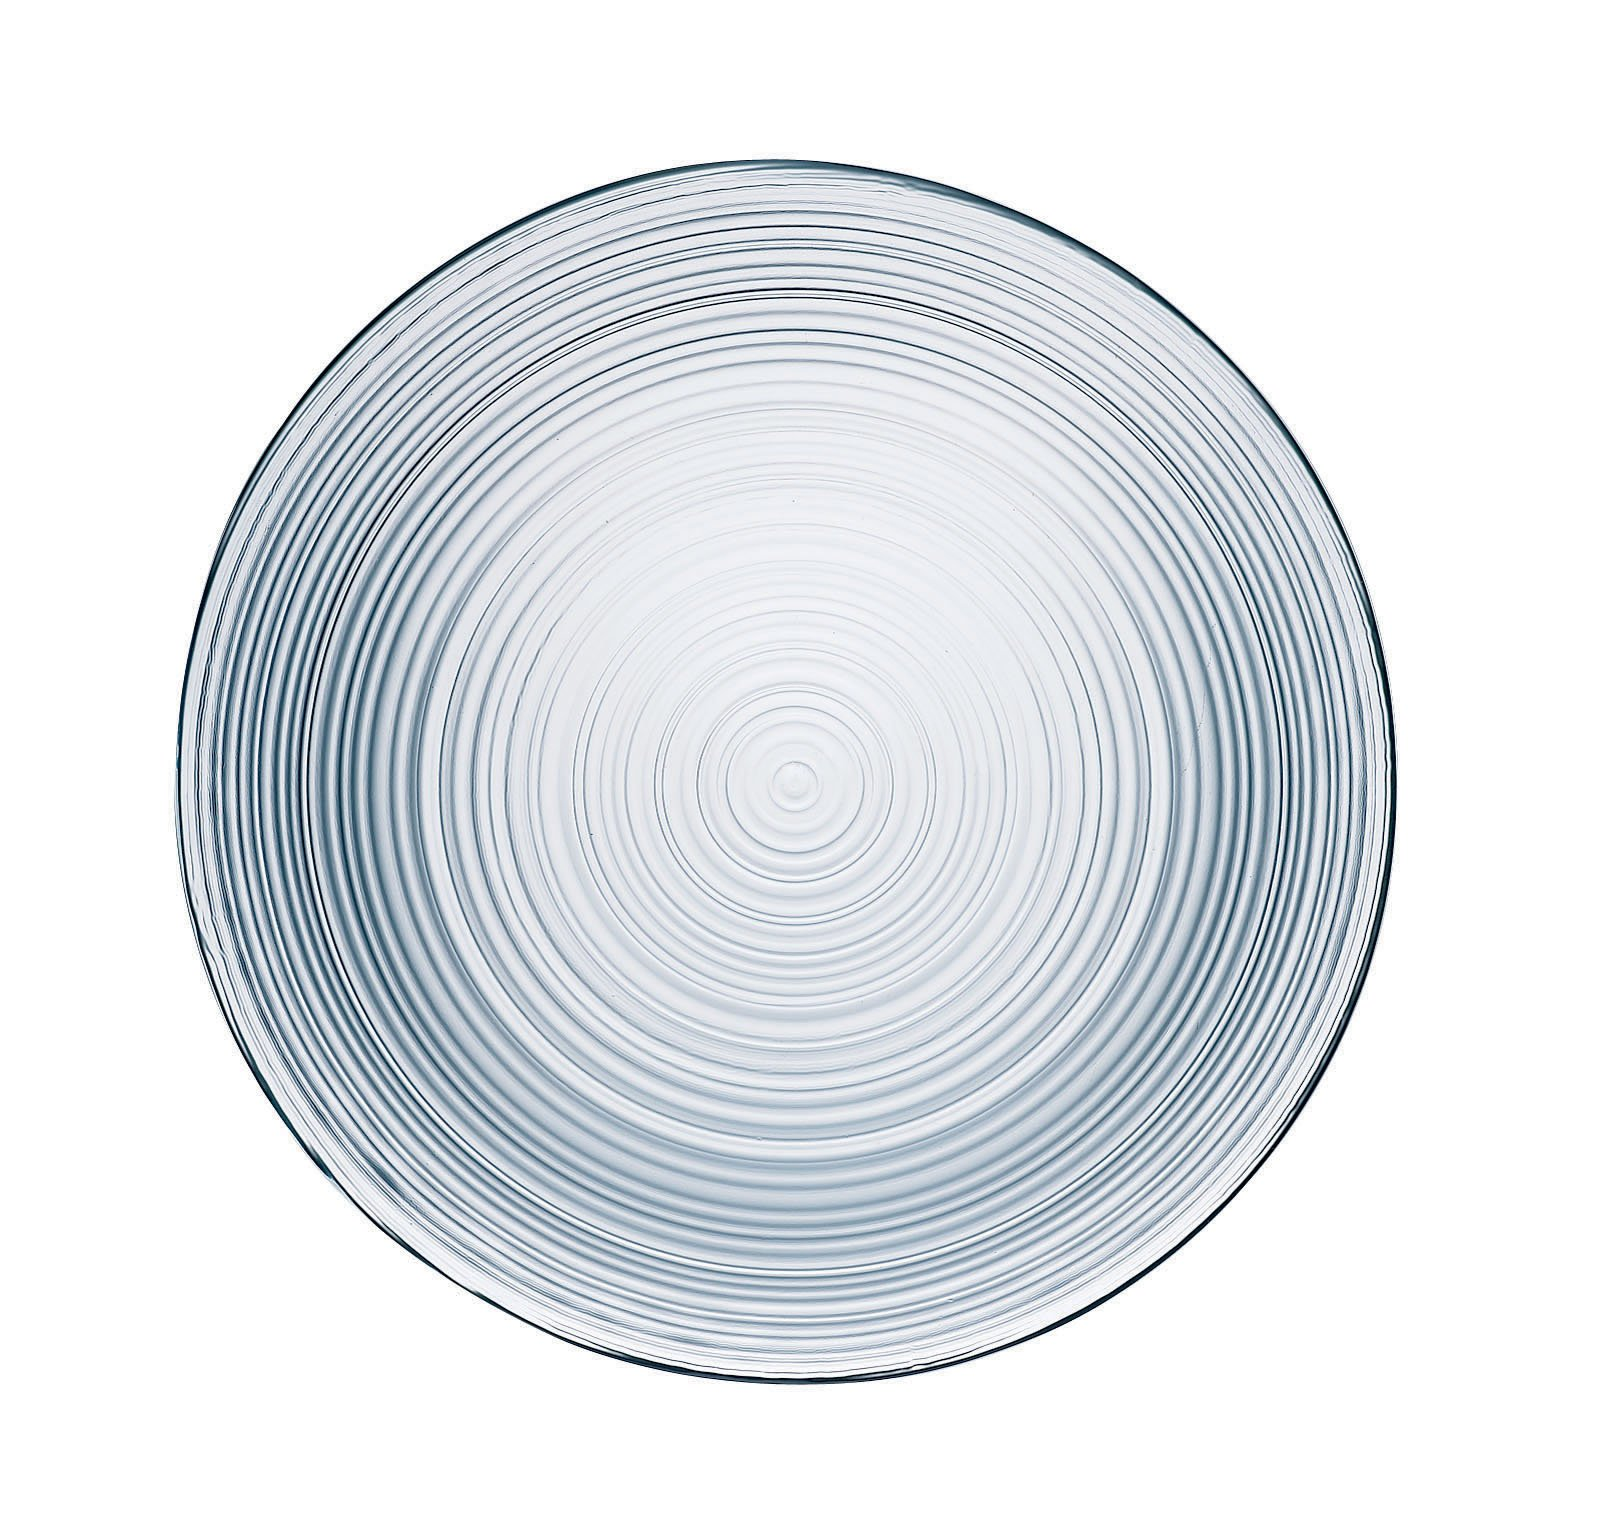 Arc International Santa Fe Dessert Plate, 7.5-Inch, Set of 6